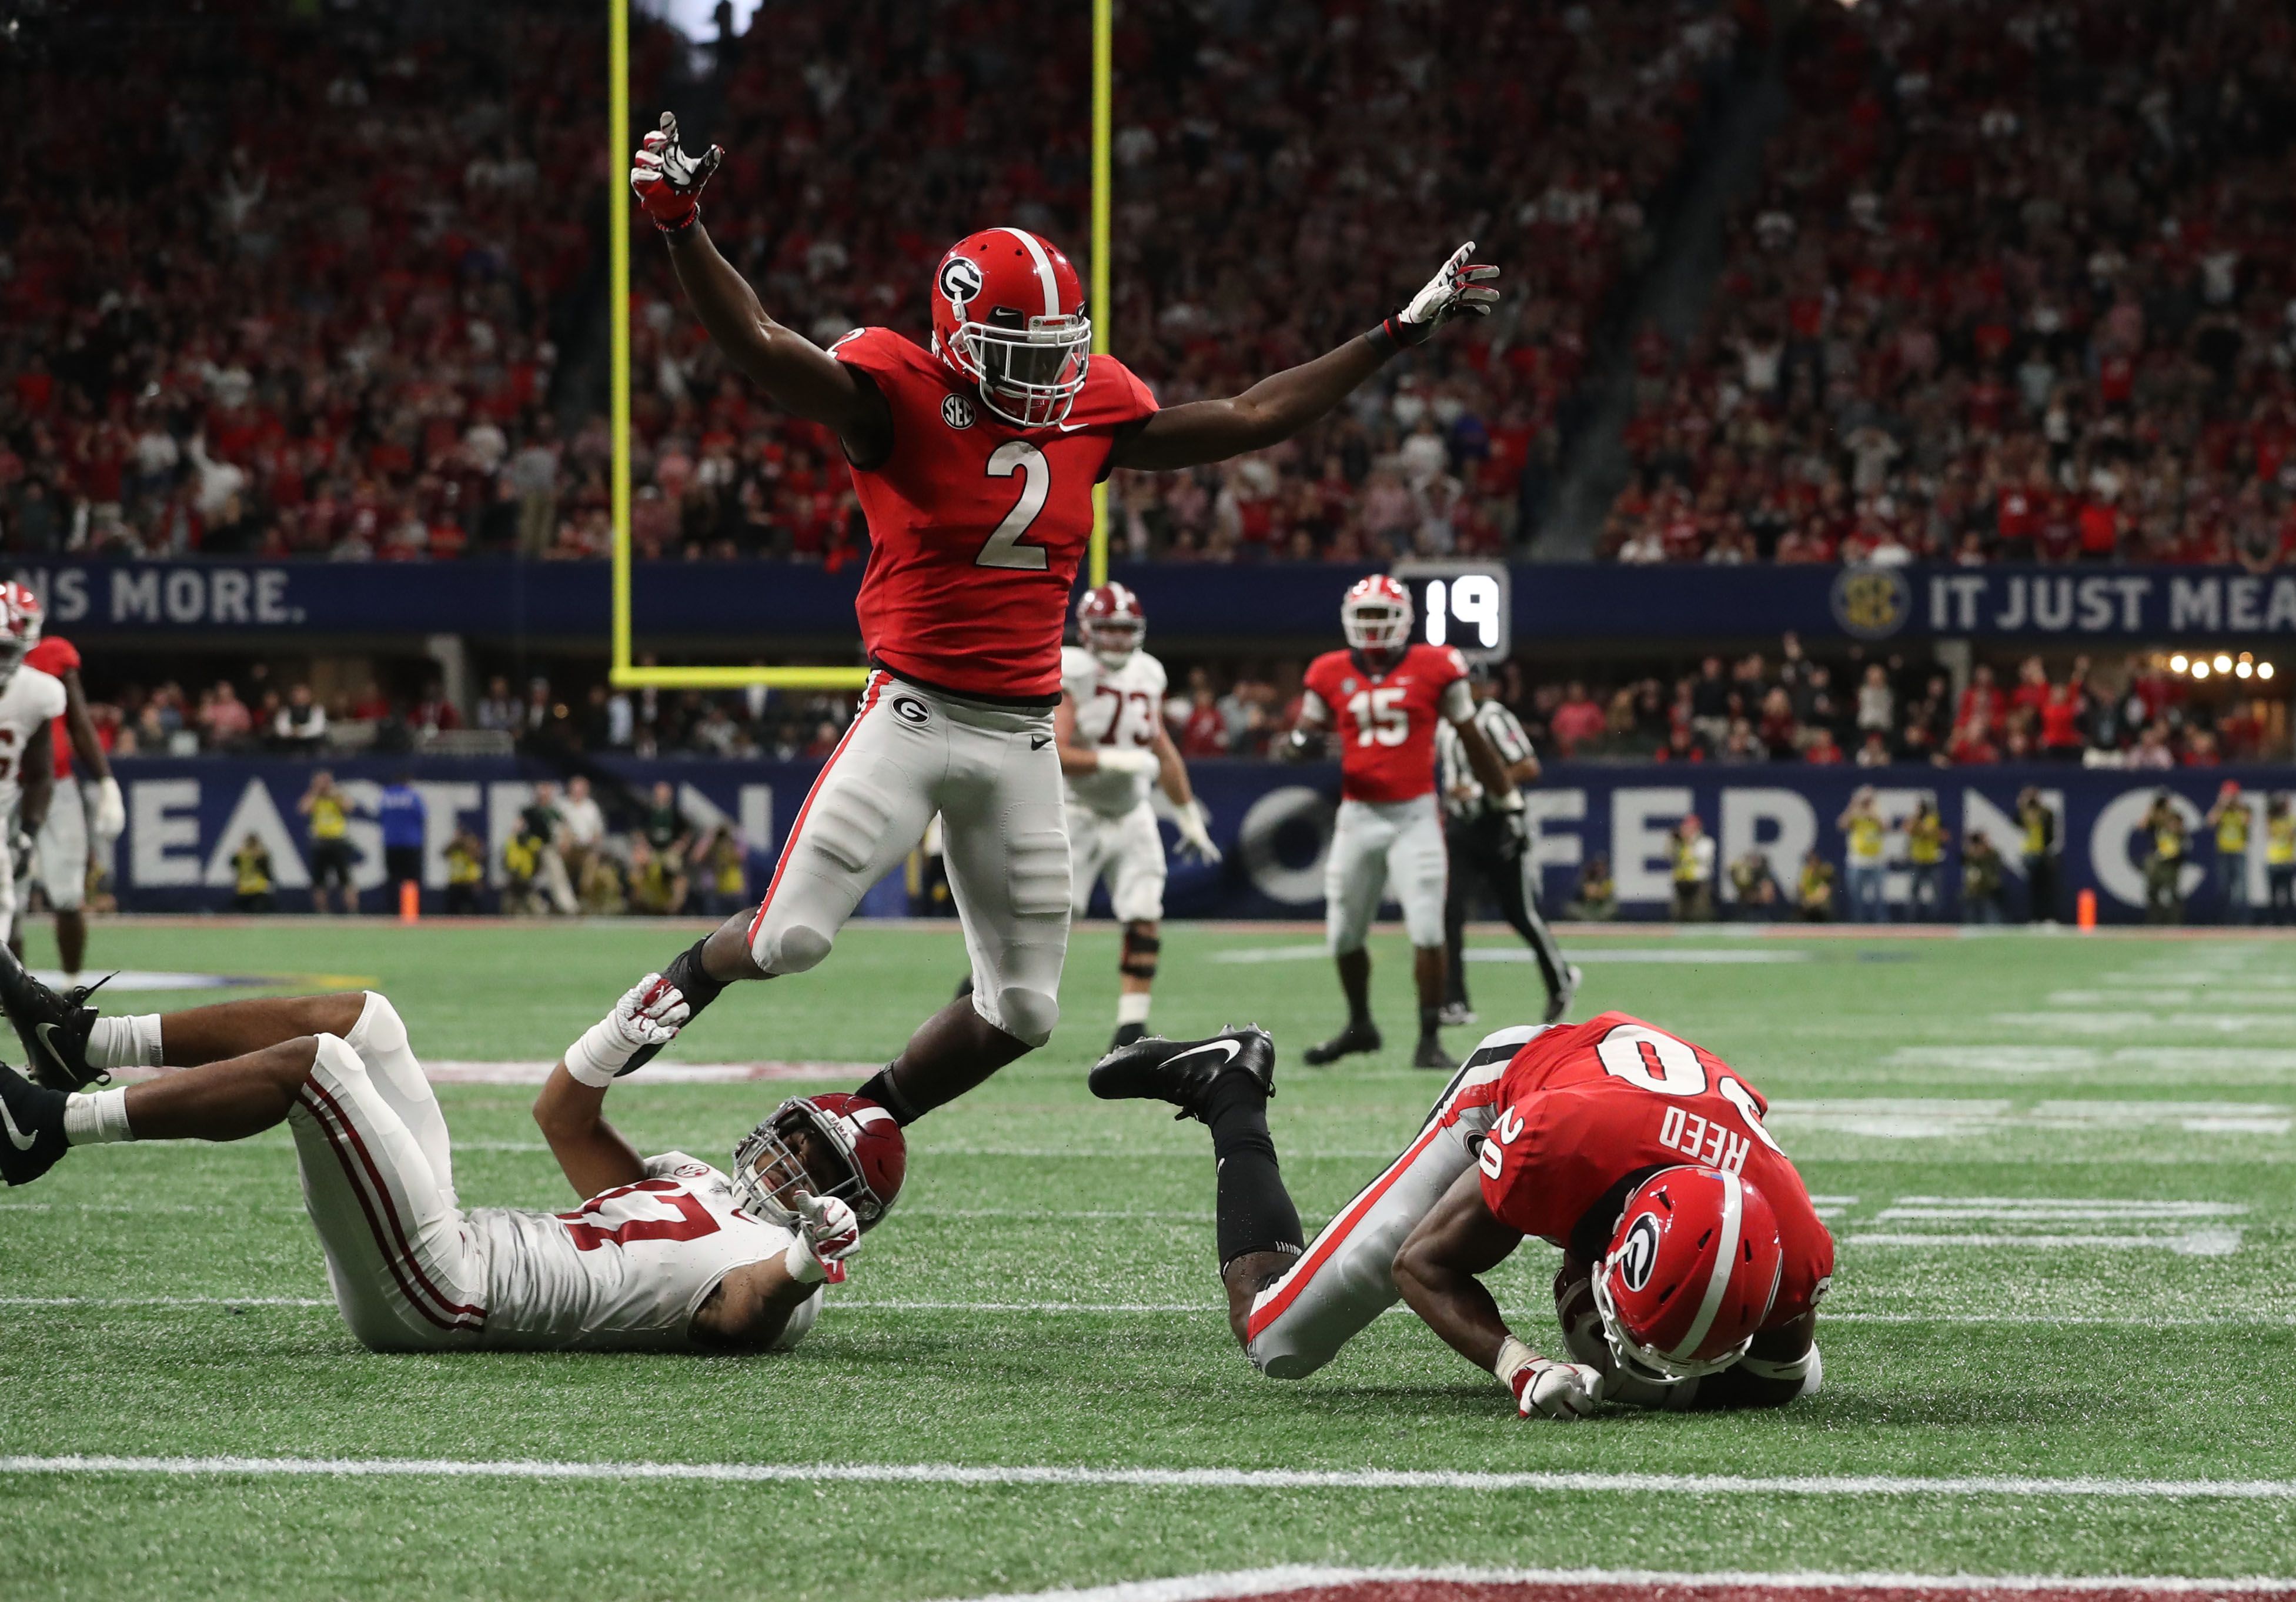 Georgia Football Has a Major Hurdle to Overcome in 2020